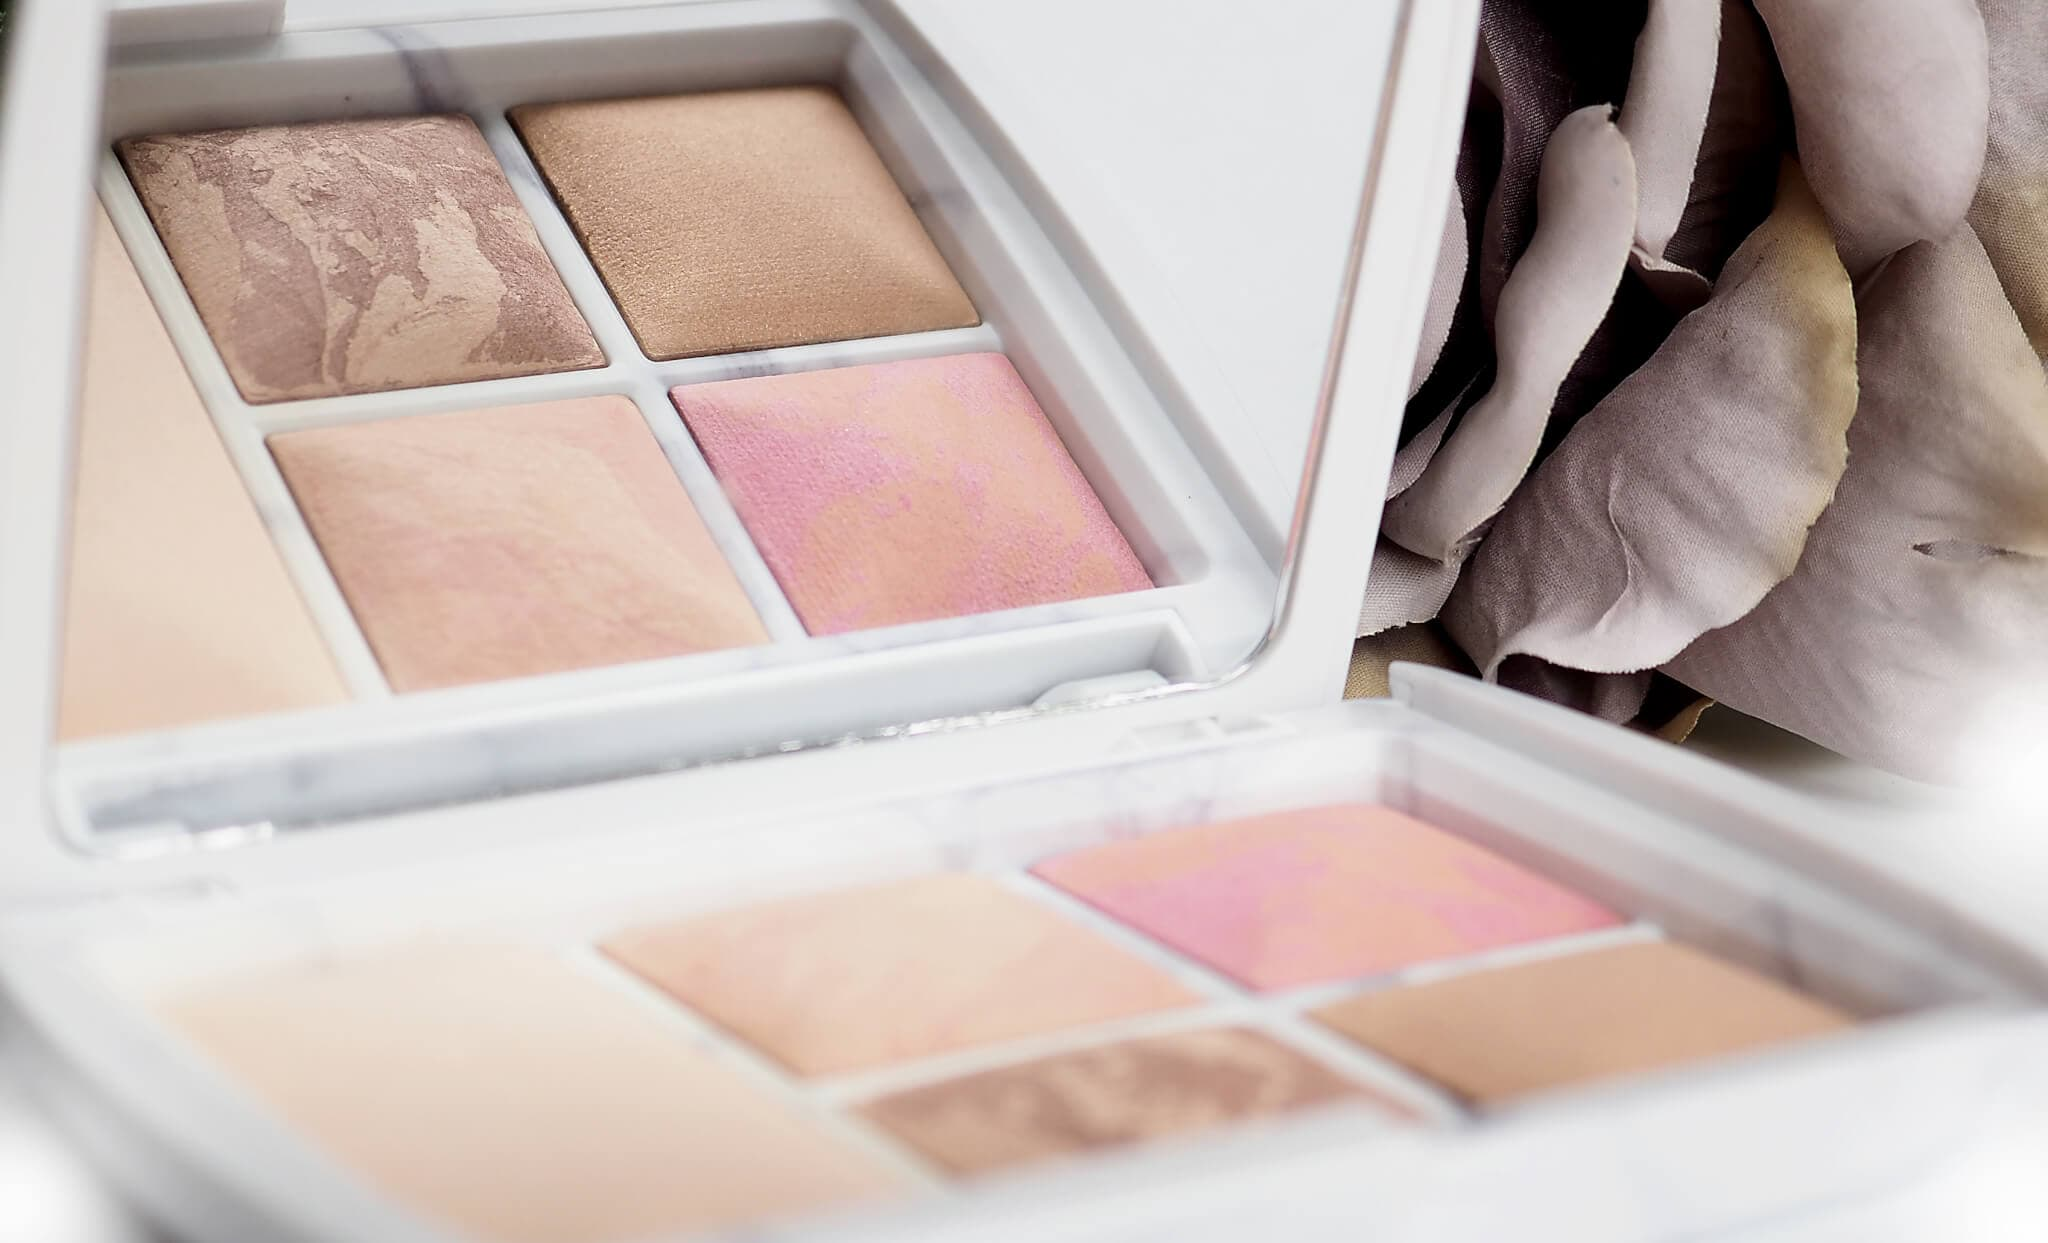 Opinia HOURGLASS SURREAL LIGHT AMBIENT LIGHTING EDIT